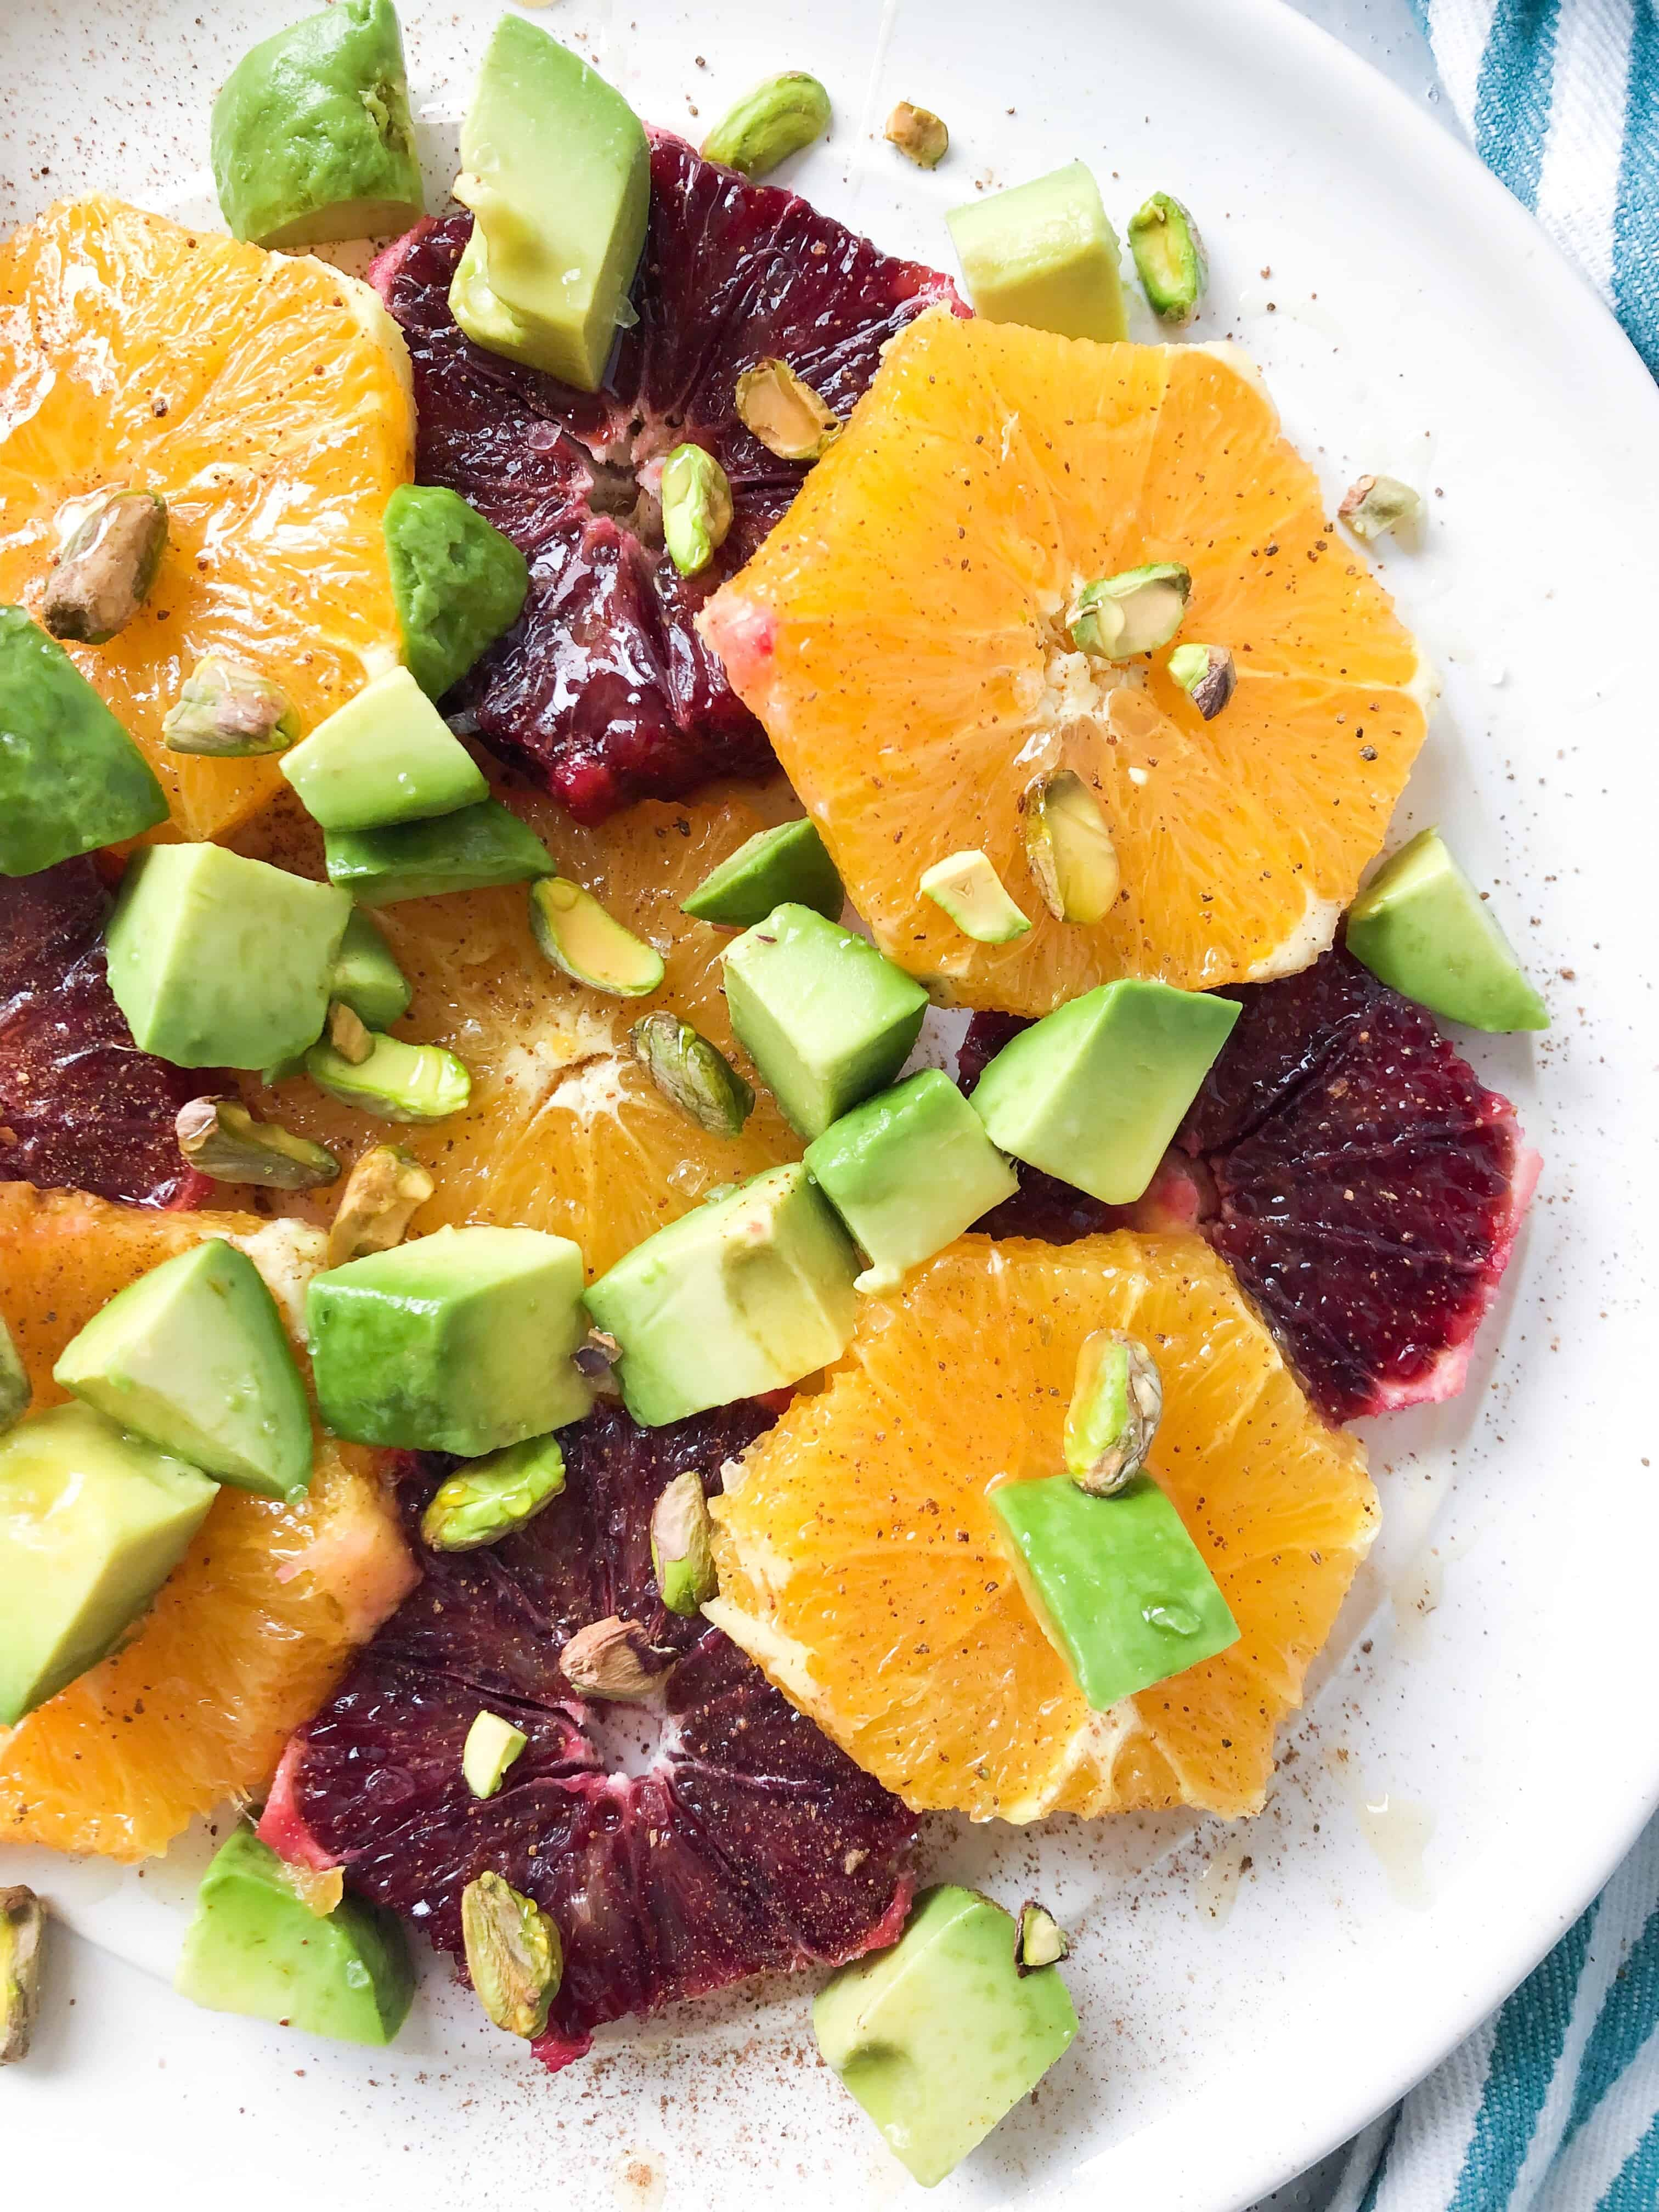 Oranges and blood oranges sliced on a plate with avocados, pistachios, and honey